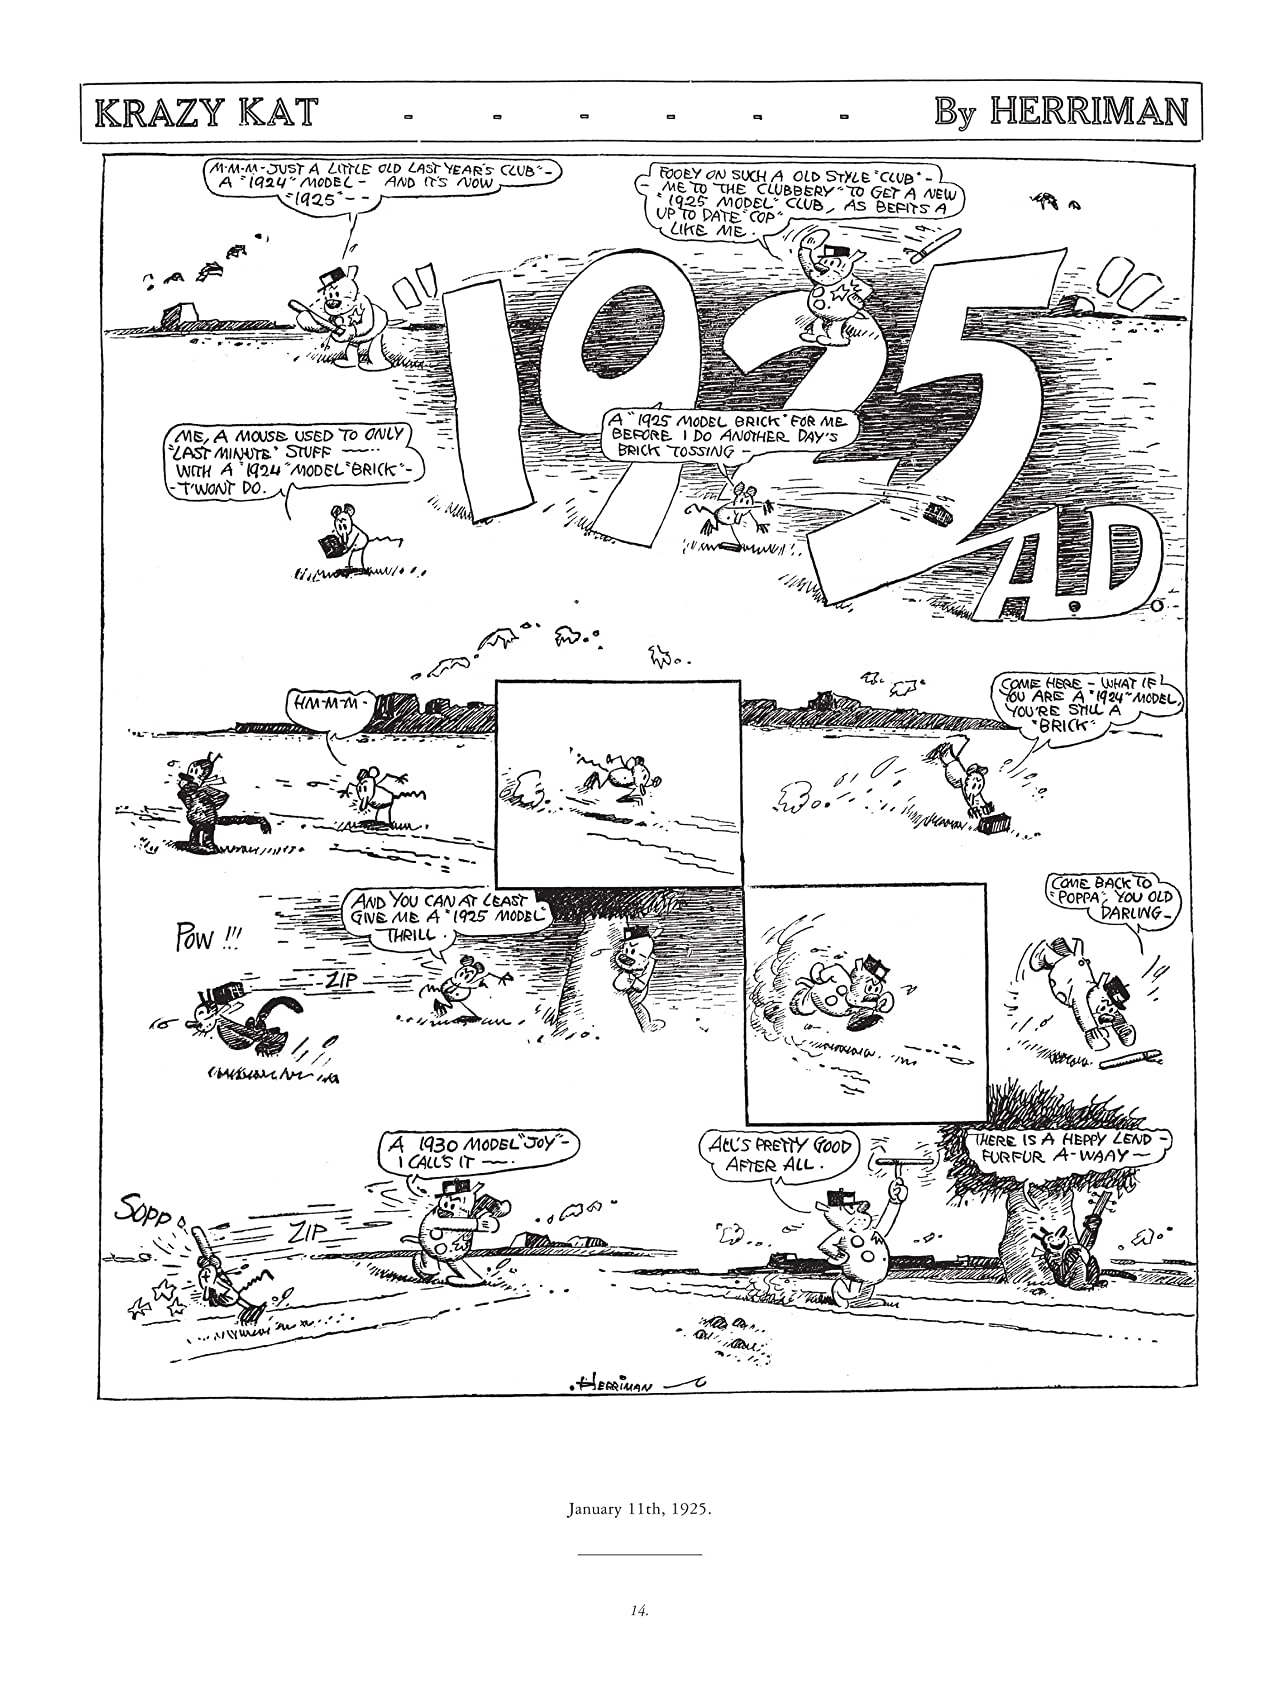 Krazy & Ignatz: 1925-1926 - There is a Heppy Land Furfur A-waay